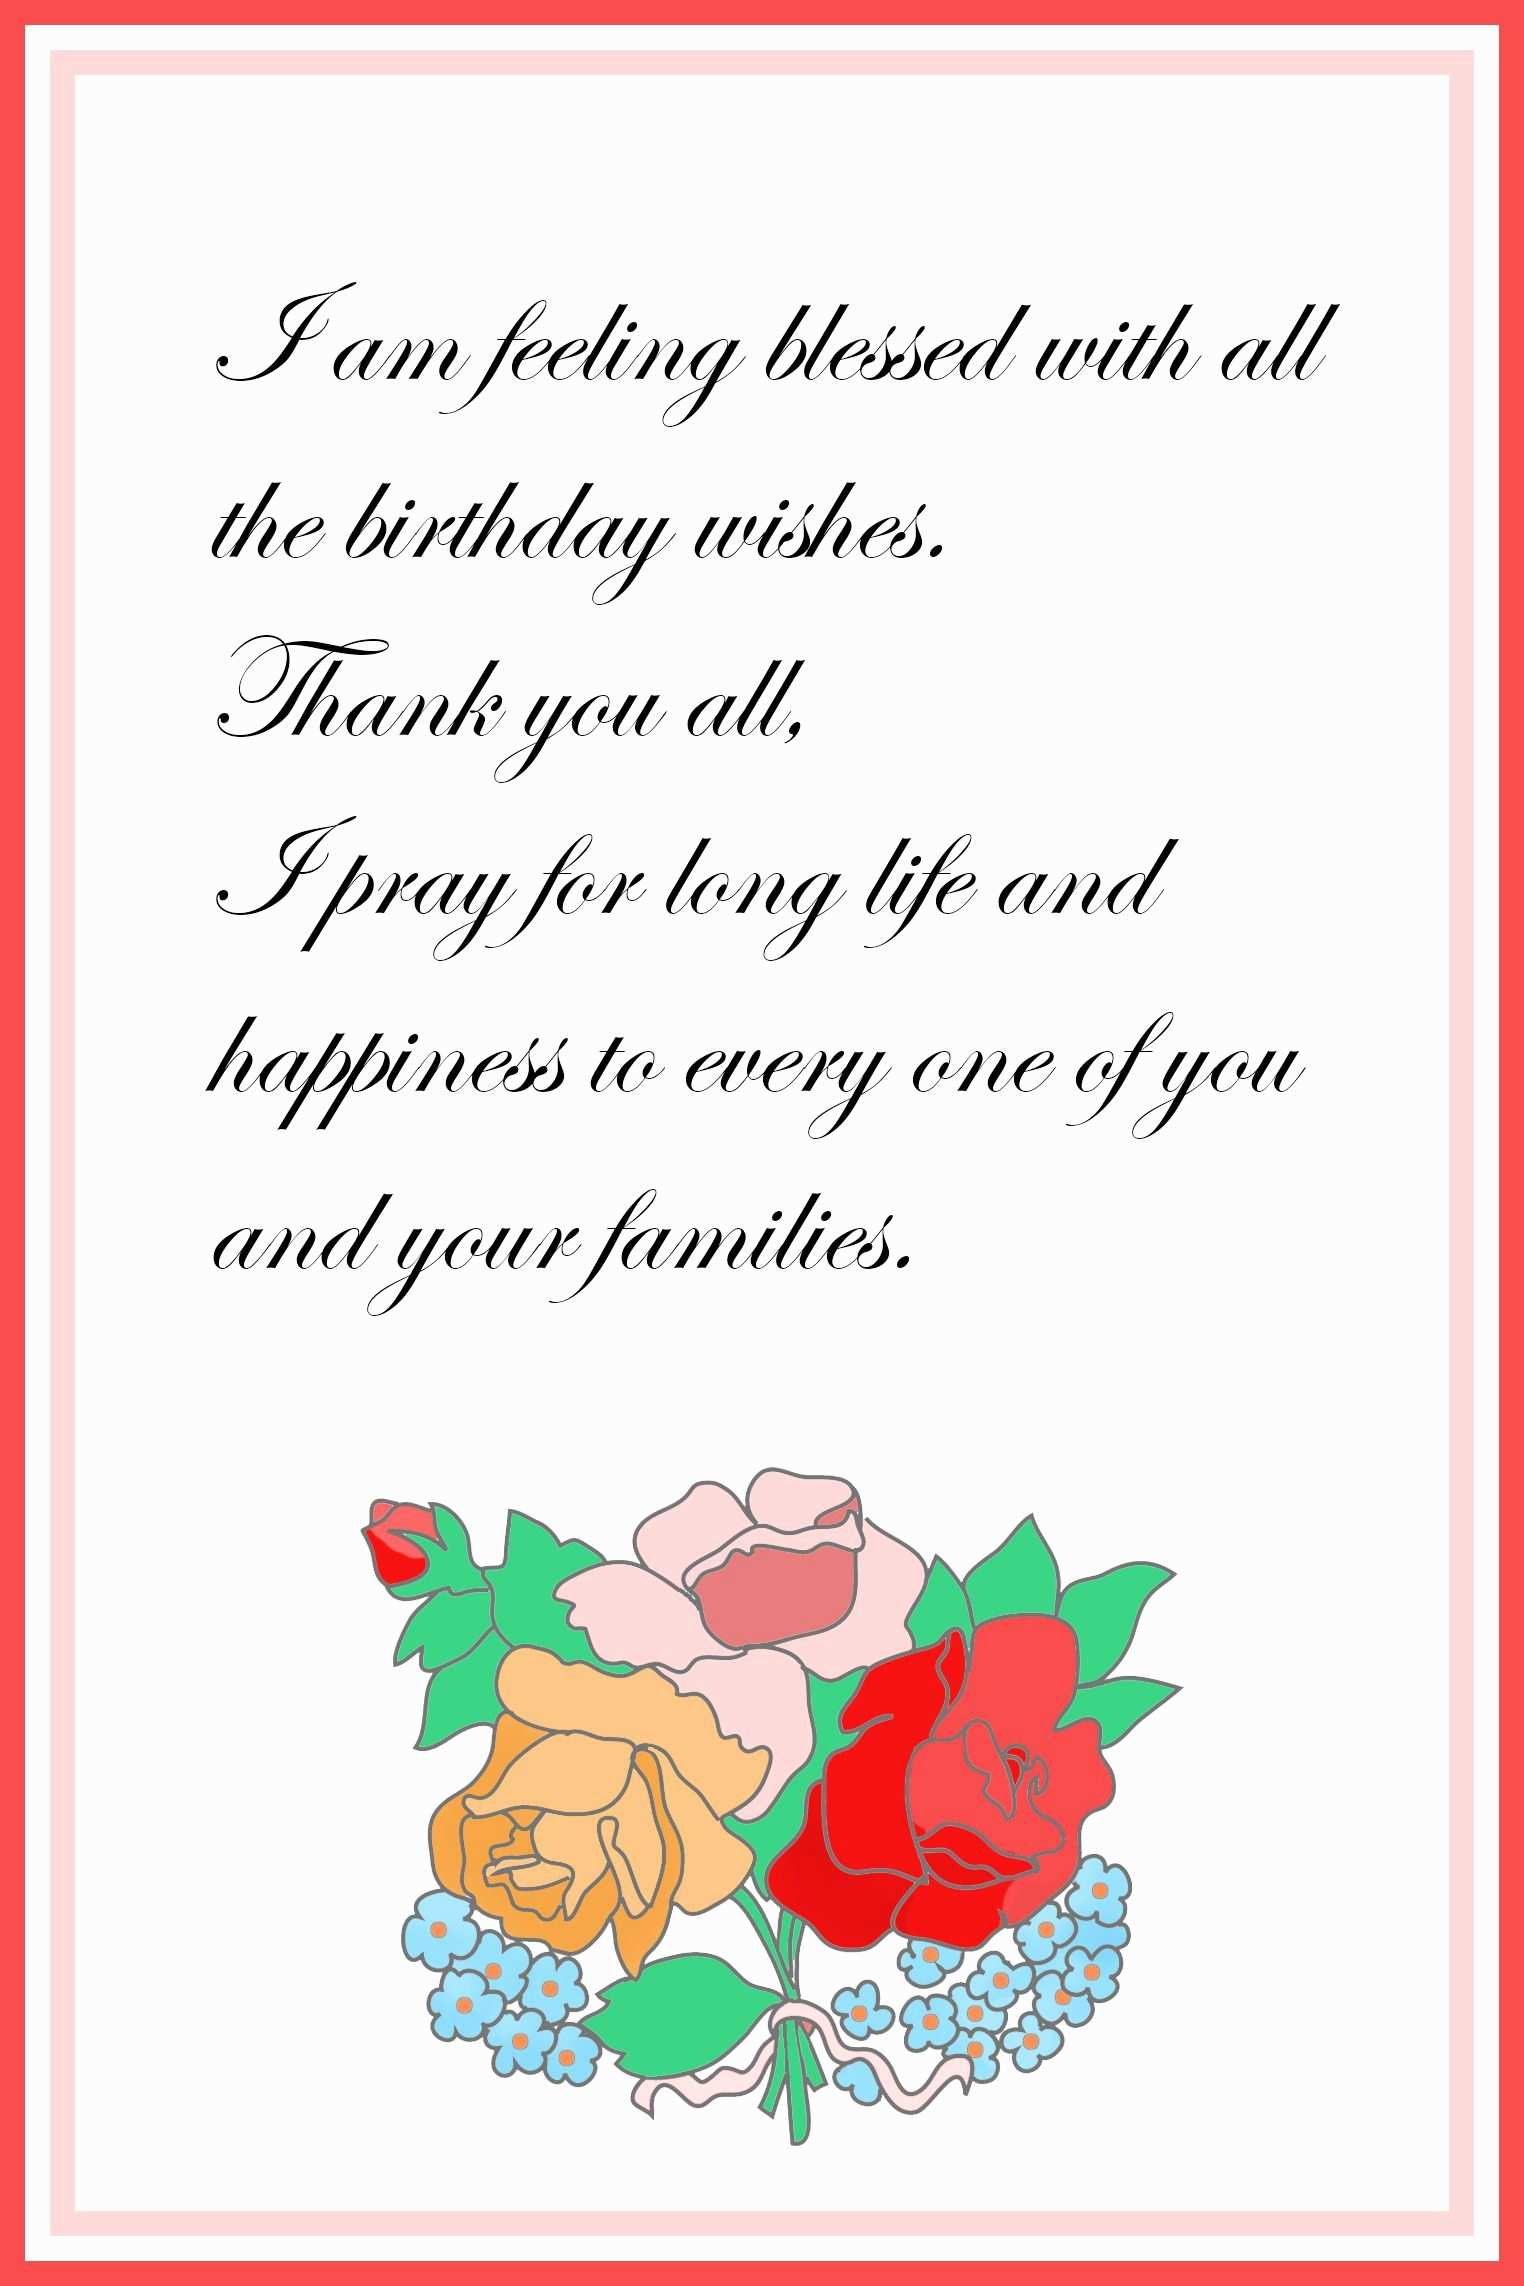 thank you note for birthday card ; thank-you-note-for-birthday-wishes-unique-thank-you-card-for-birthday-wishes-lovely-thank-you-greeting-card-of-thank-you-note-for-birthday-wishes